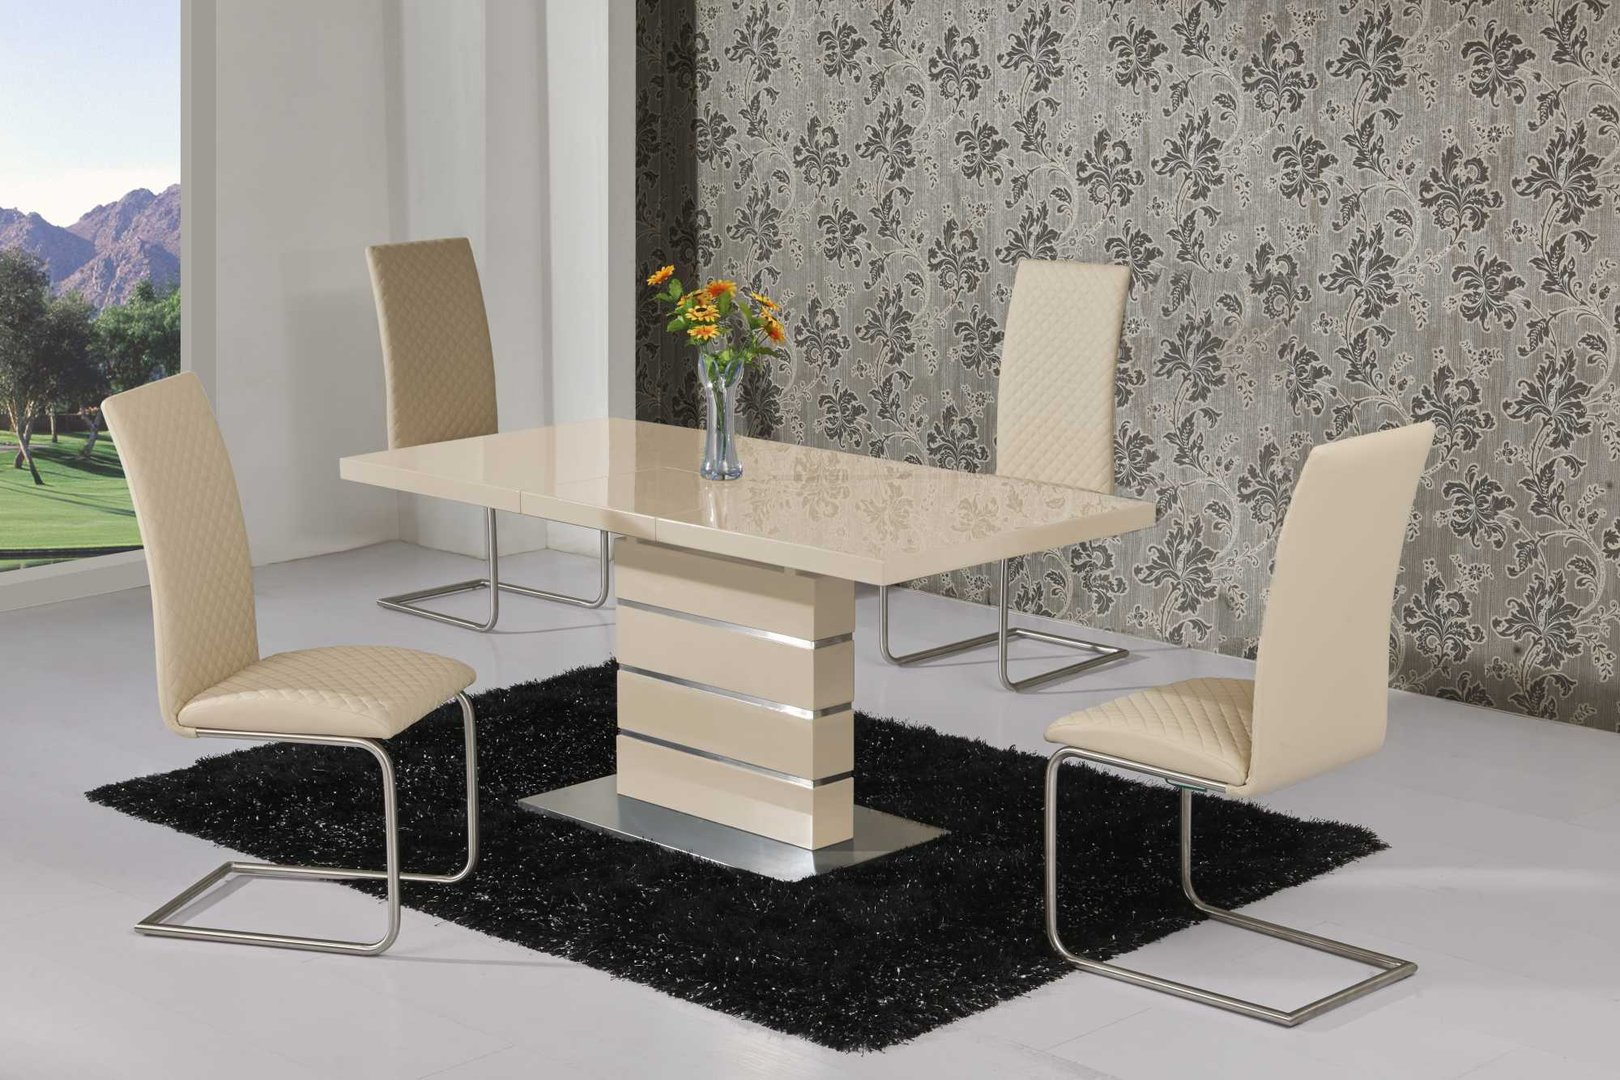 Extending Cream High Gloss Dining Table And 4 Cream Chairs